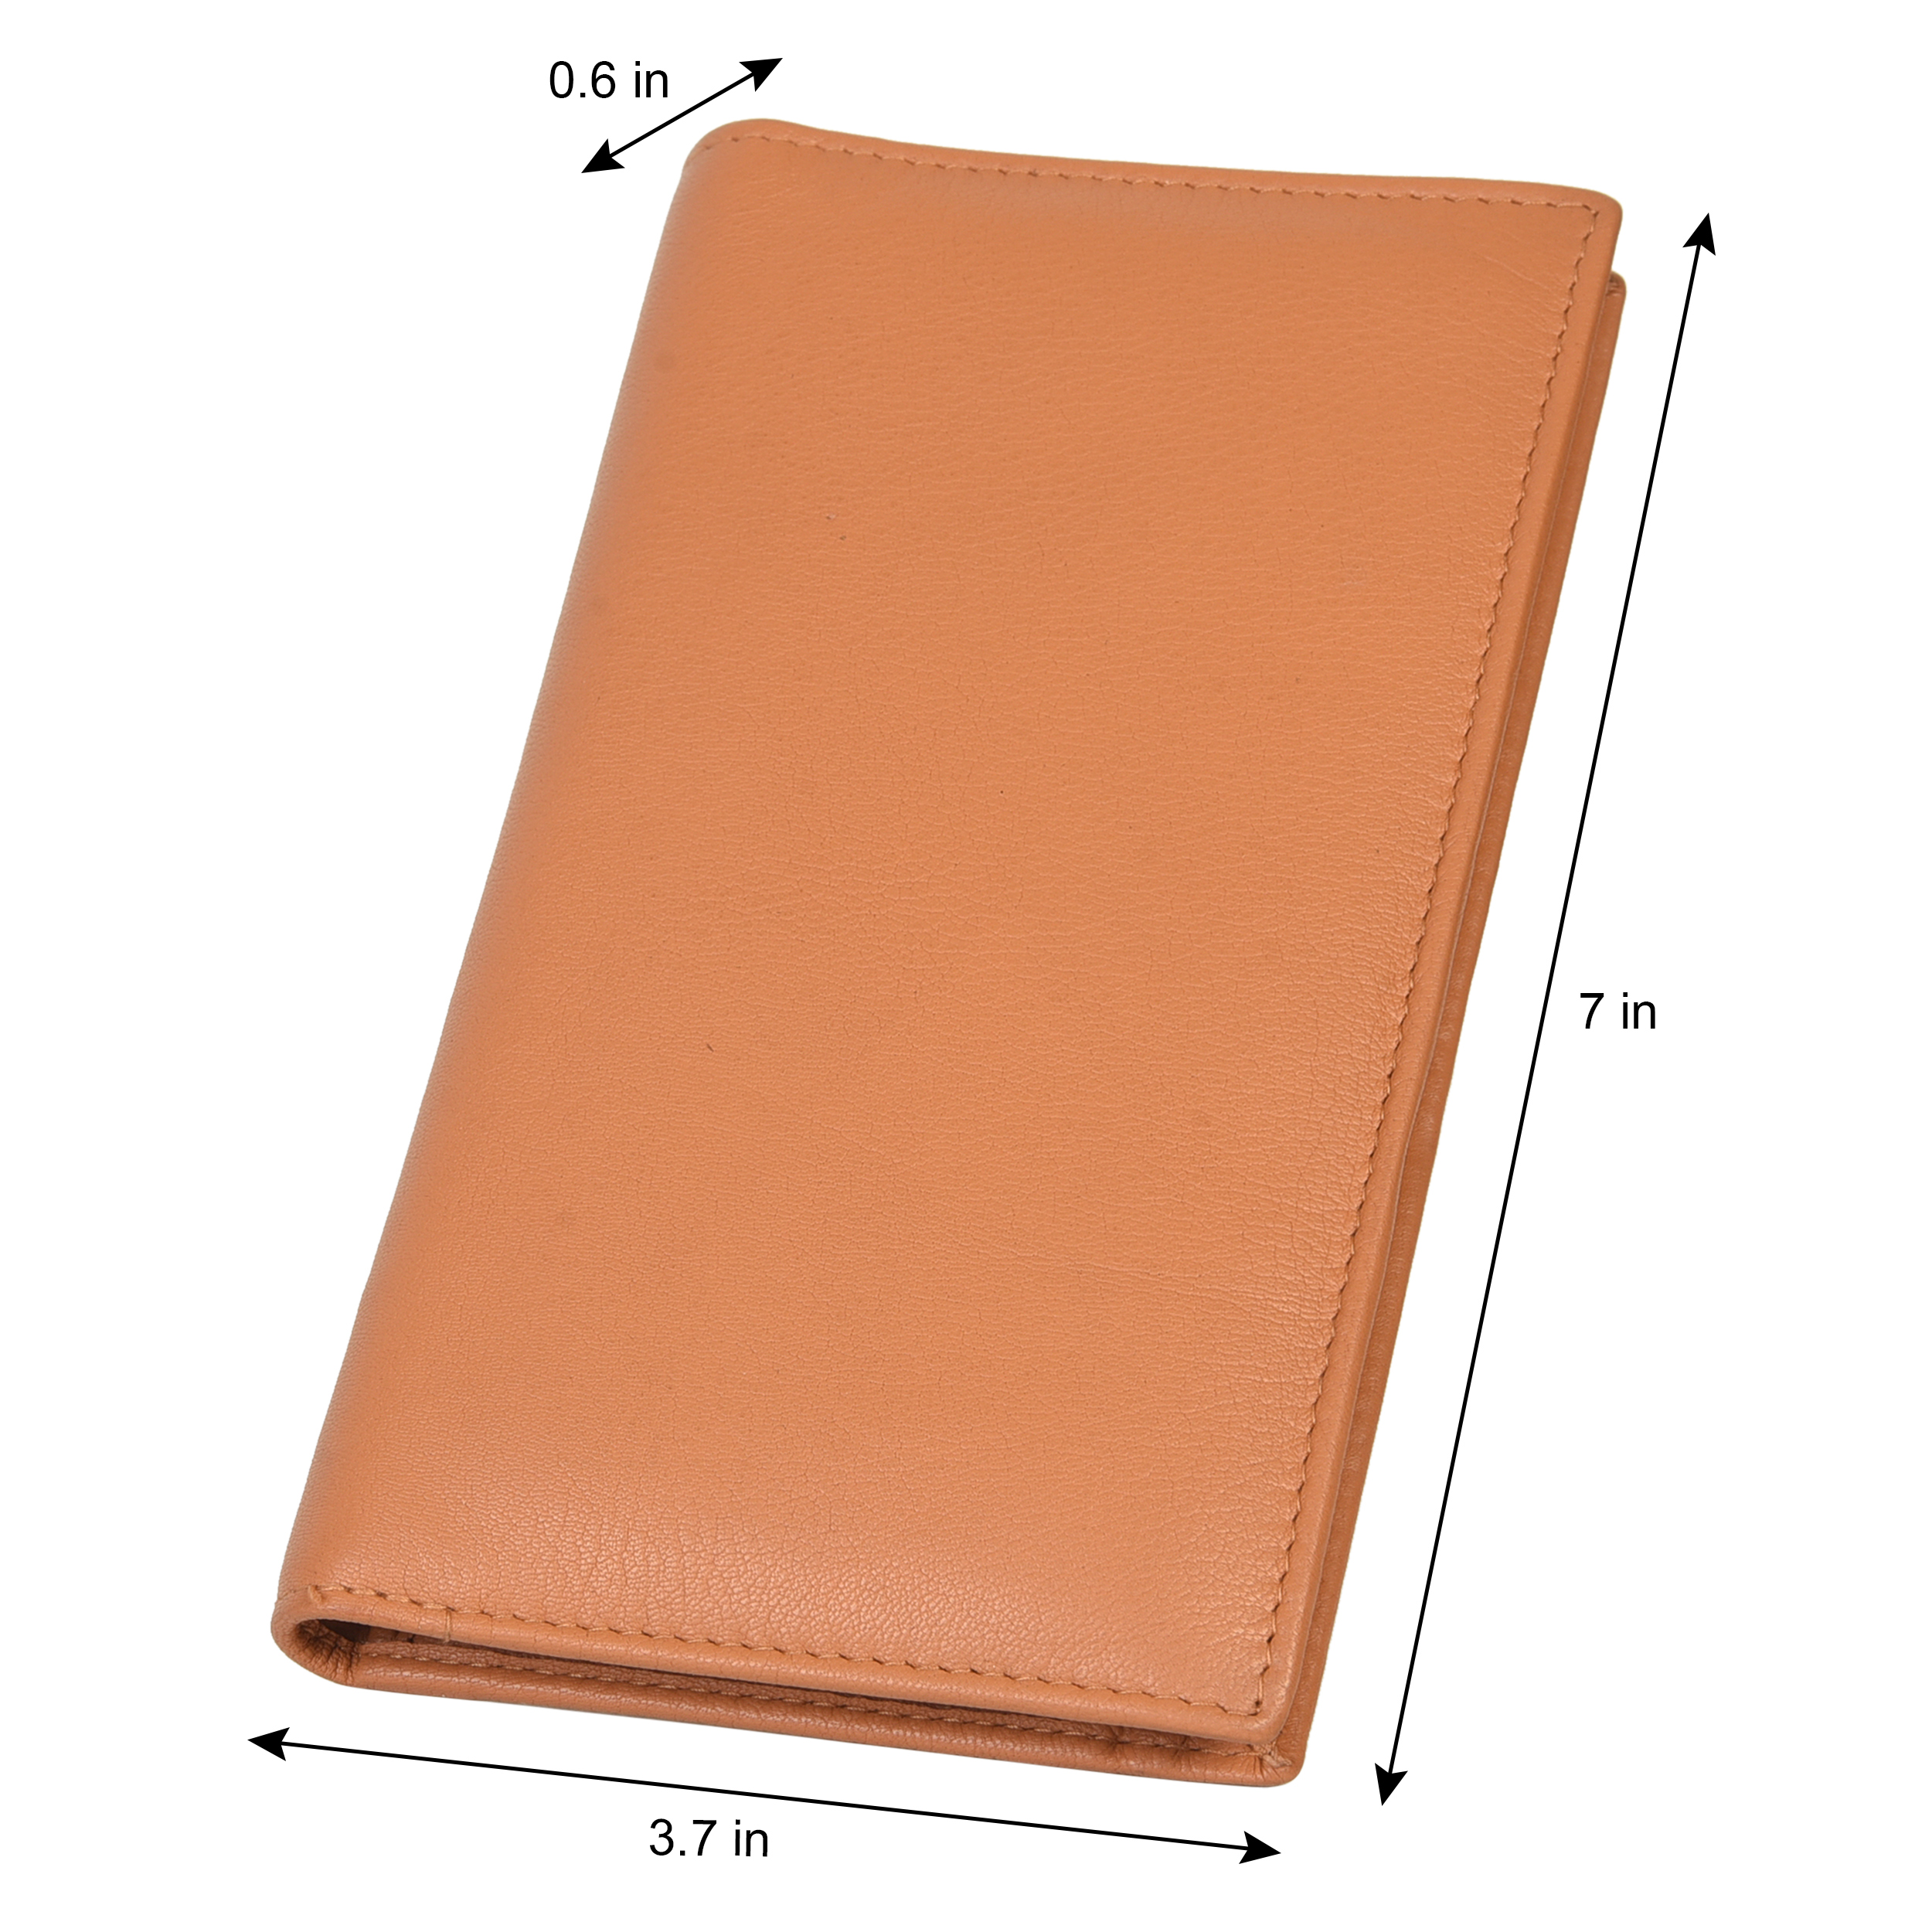 CHECKBOOK MONEY CREDIT CARD HOLDER TAN NEW GENUINE LEATHER